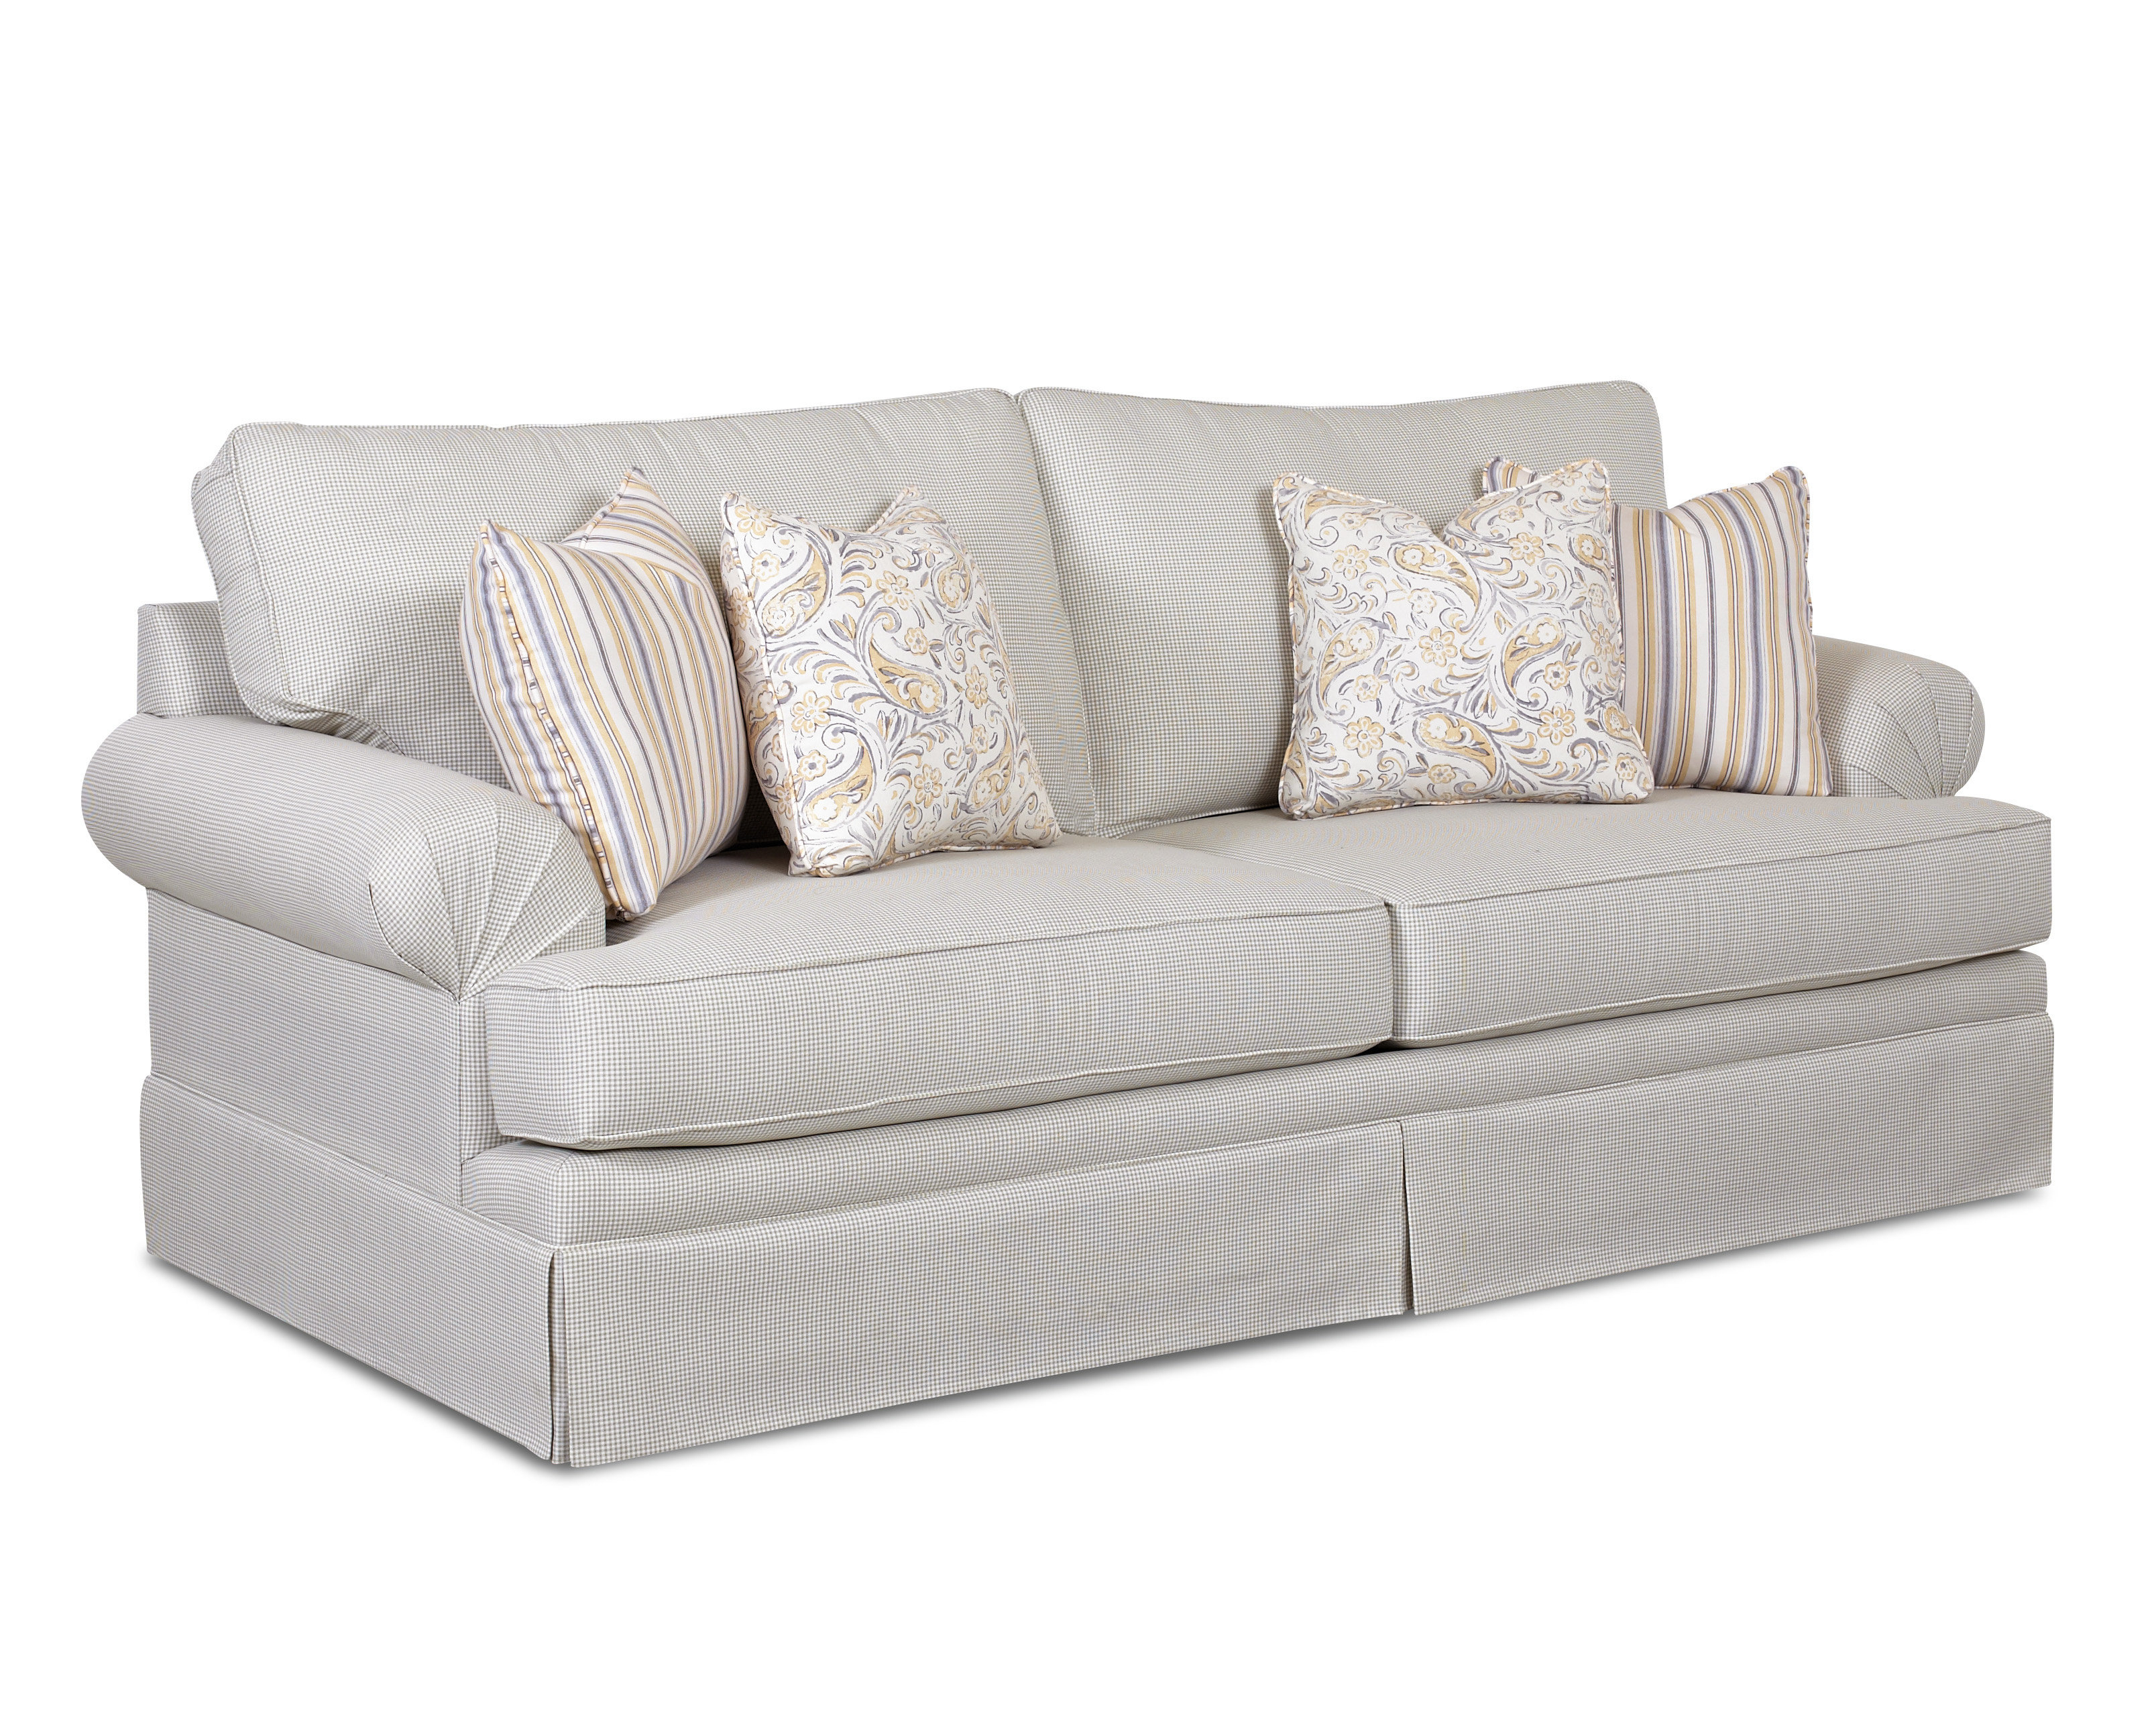 Klaussner Furniture Gale Sofa | Wayfair Intended For Bailey Roll Arm Skirted Swivel Gliders (Image 17 of 25)